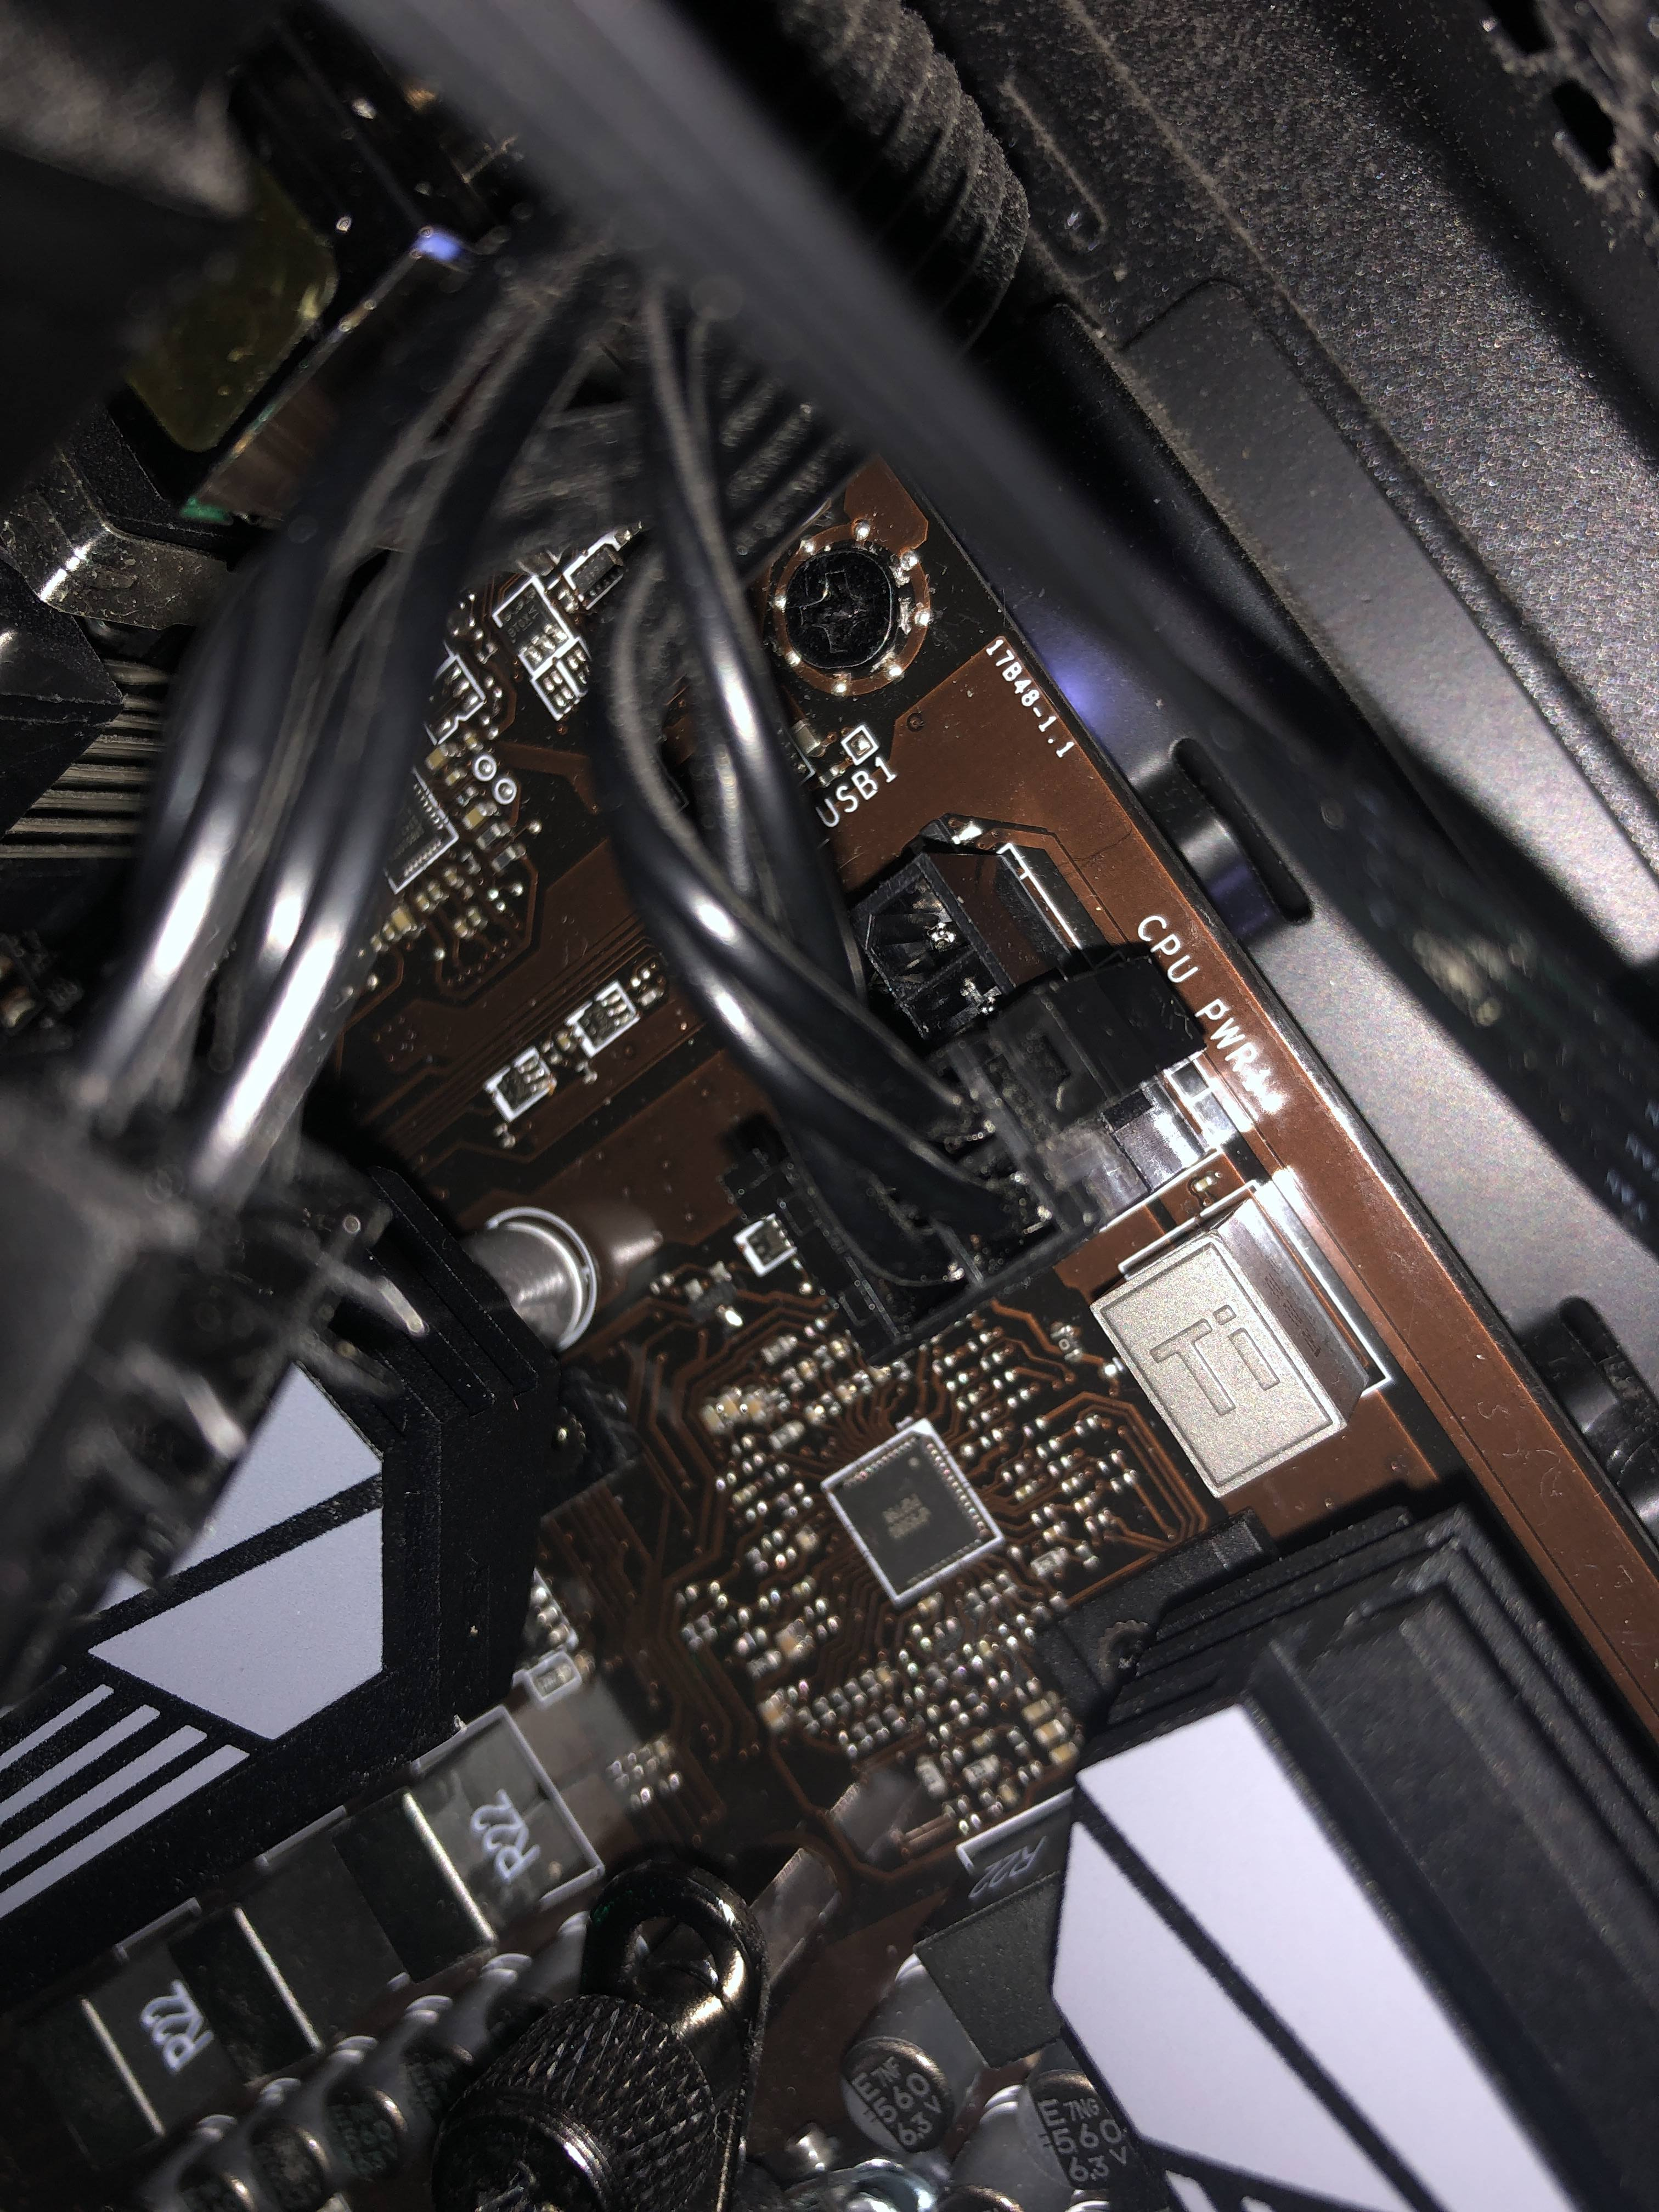 No Display After changing parts and motherboard